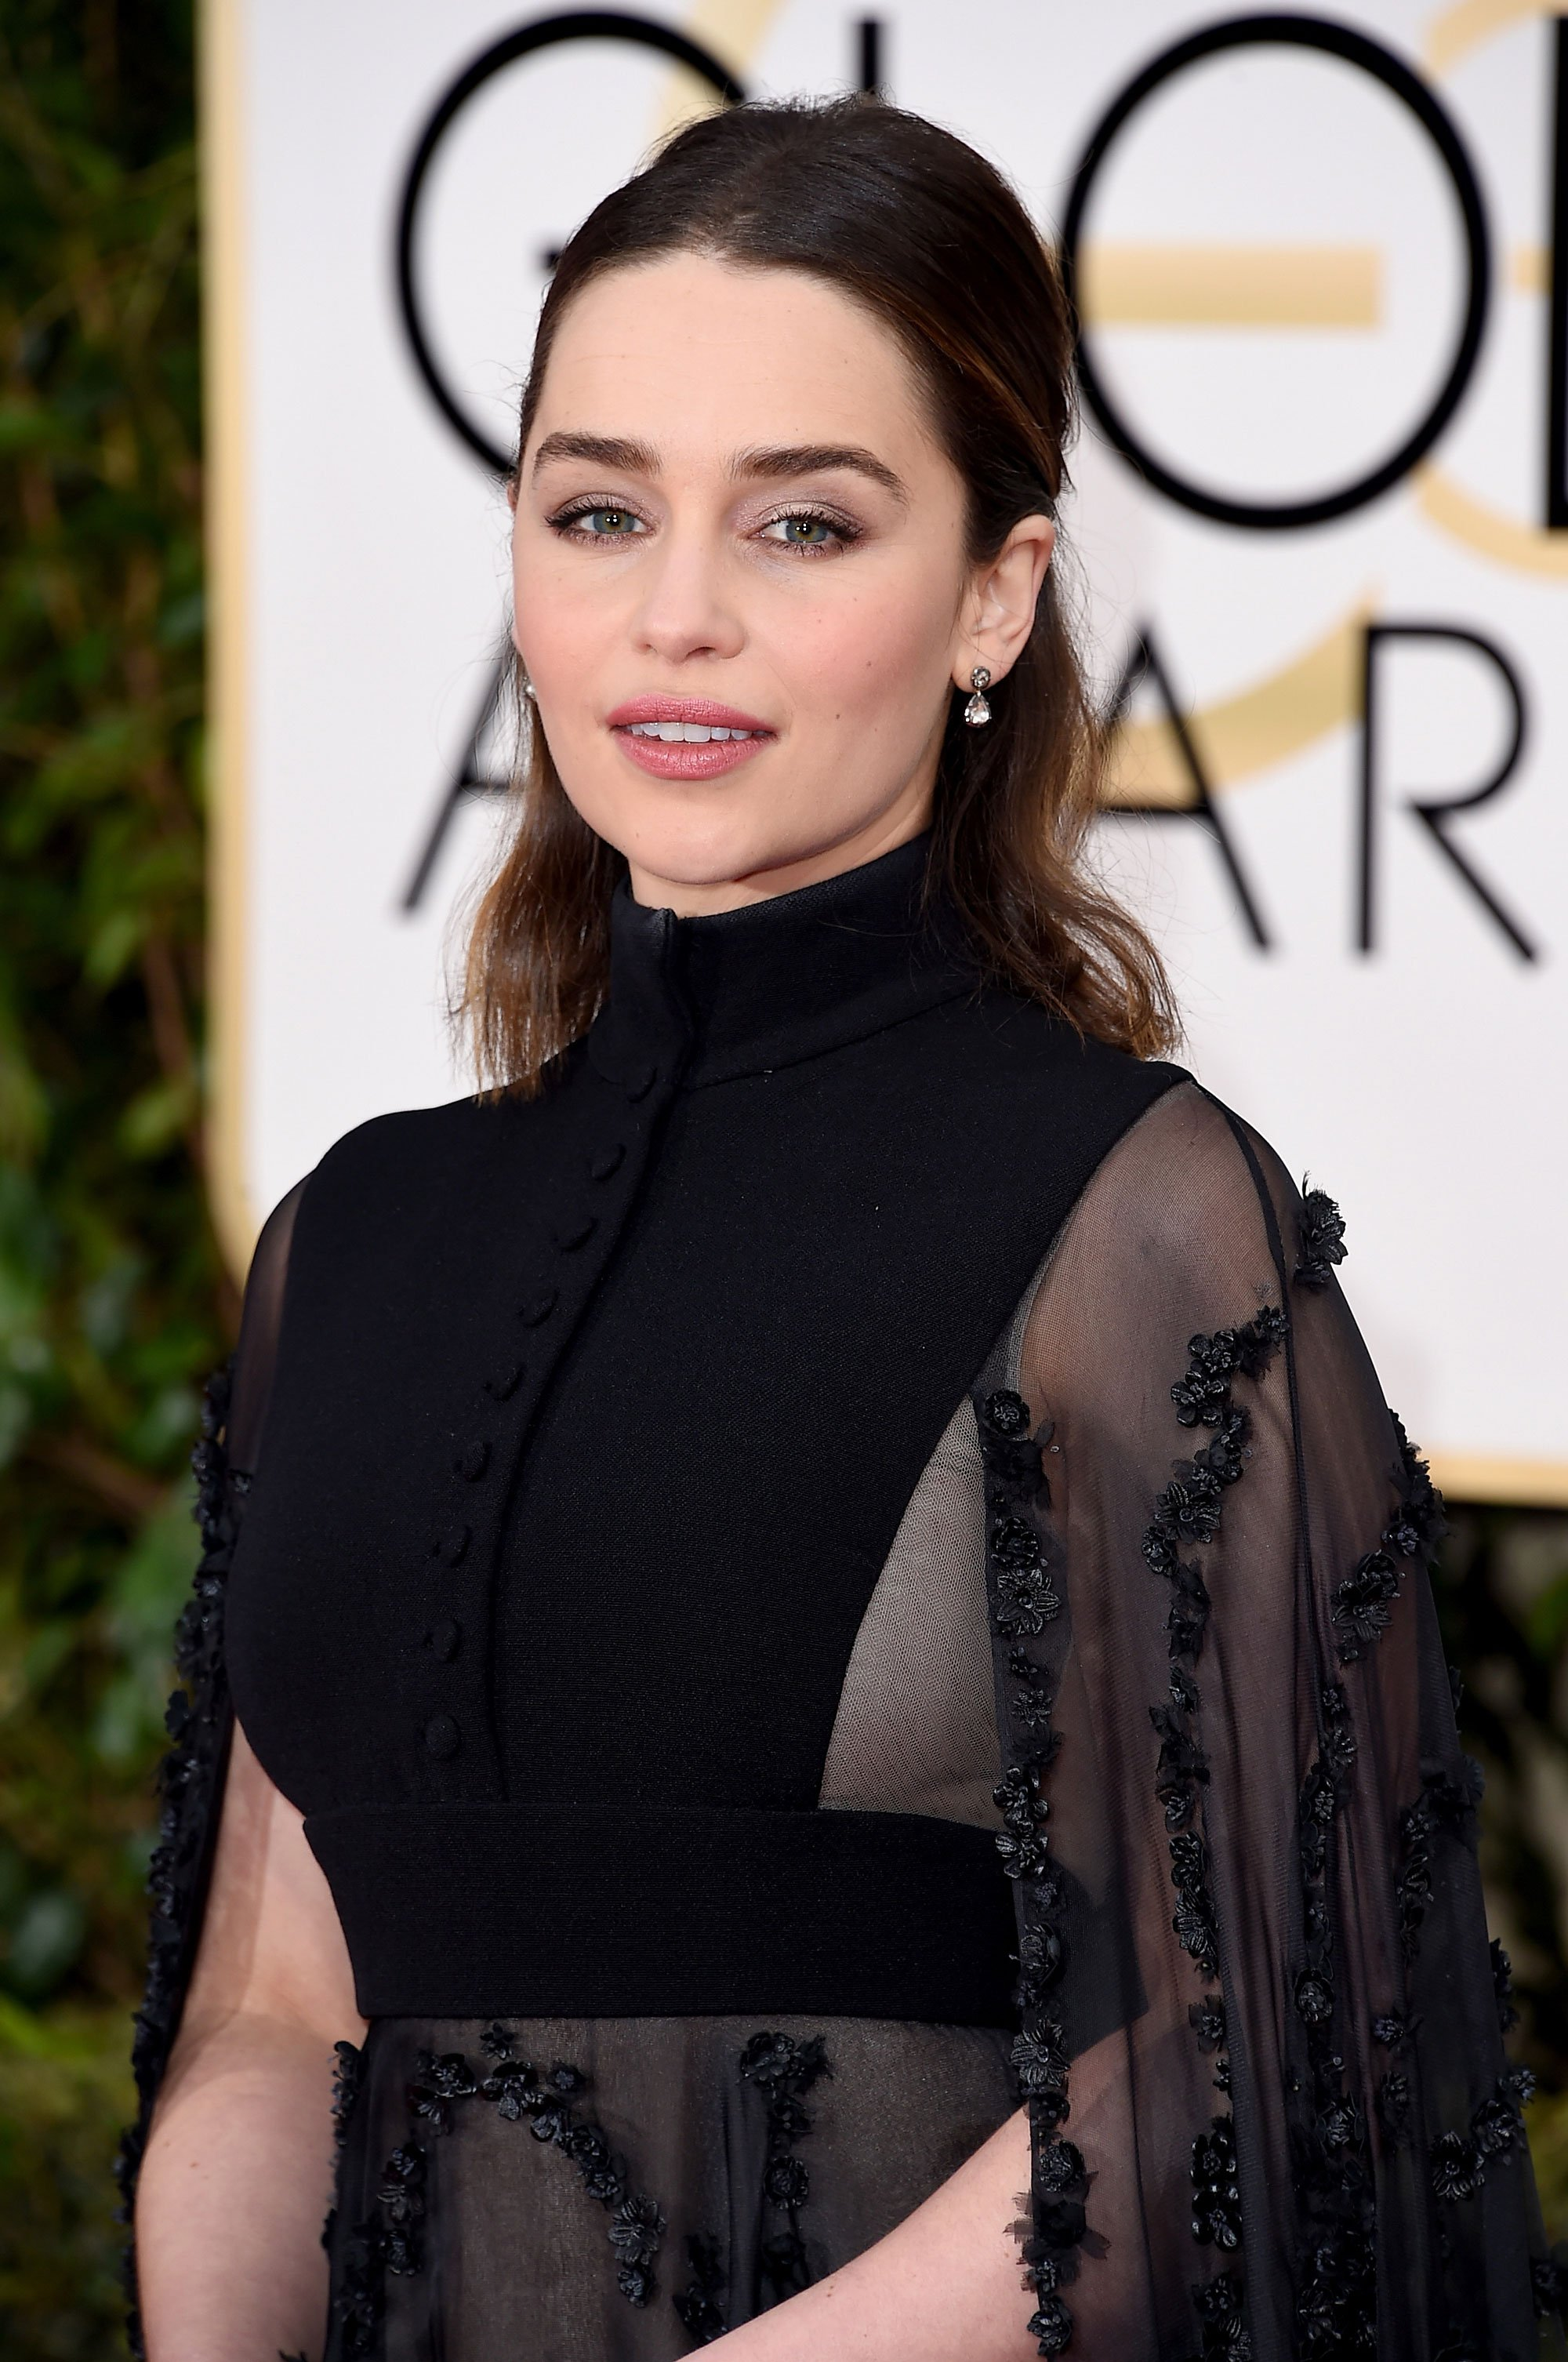 Emilia Clarke at Golden Globes Awards 2016